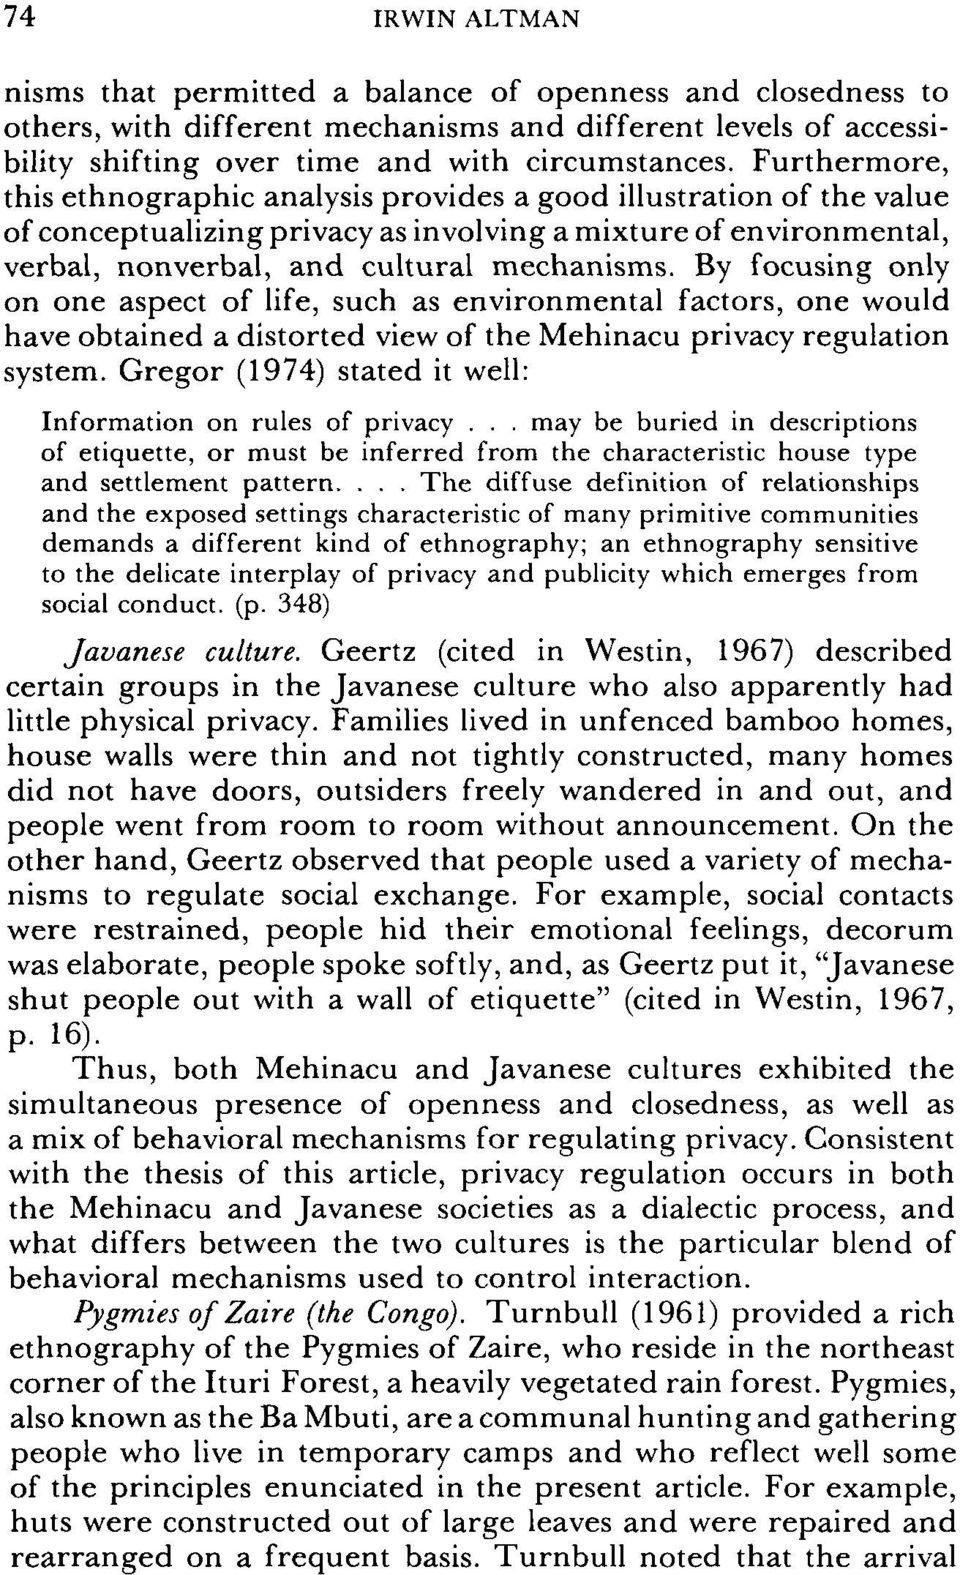 By focusing only on one aspect of life, such as environmental factors, one would have obtained a distorted view of the Mehinacu privacy regulation system.